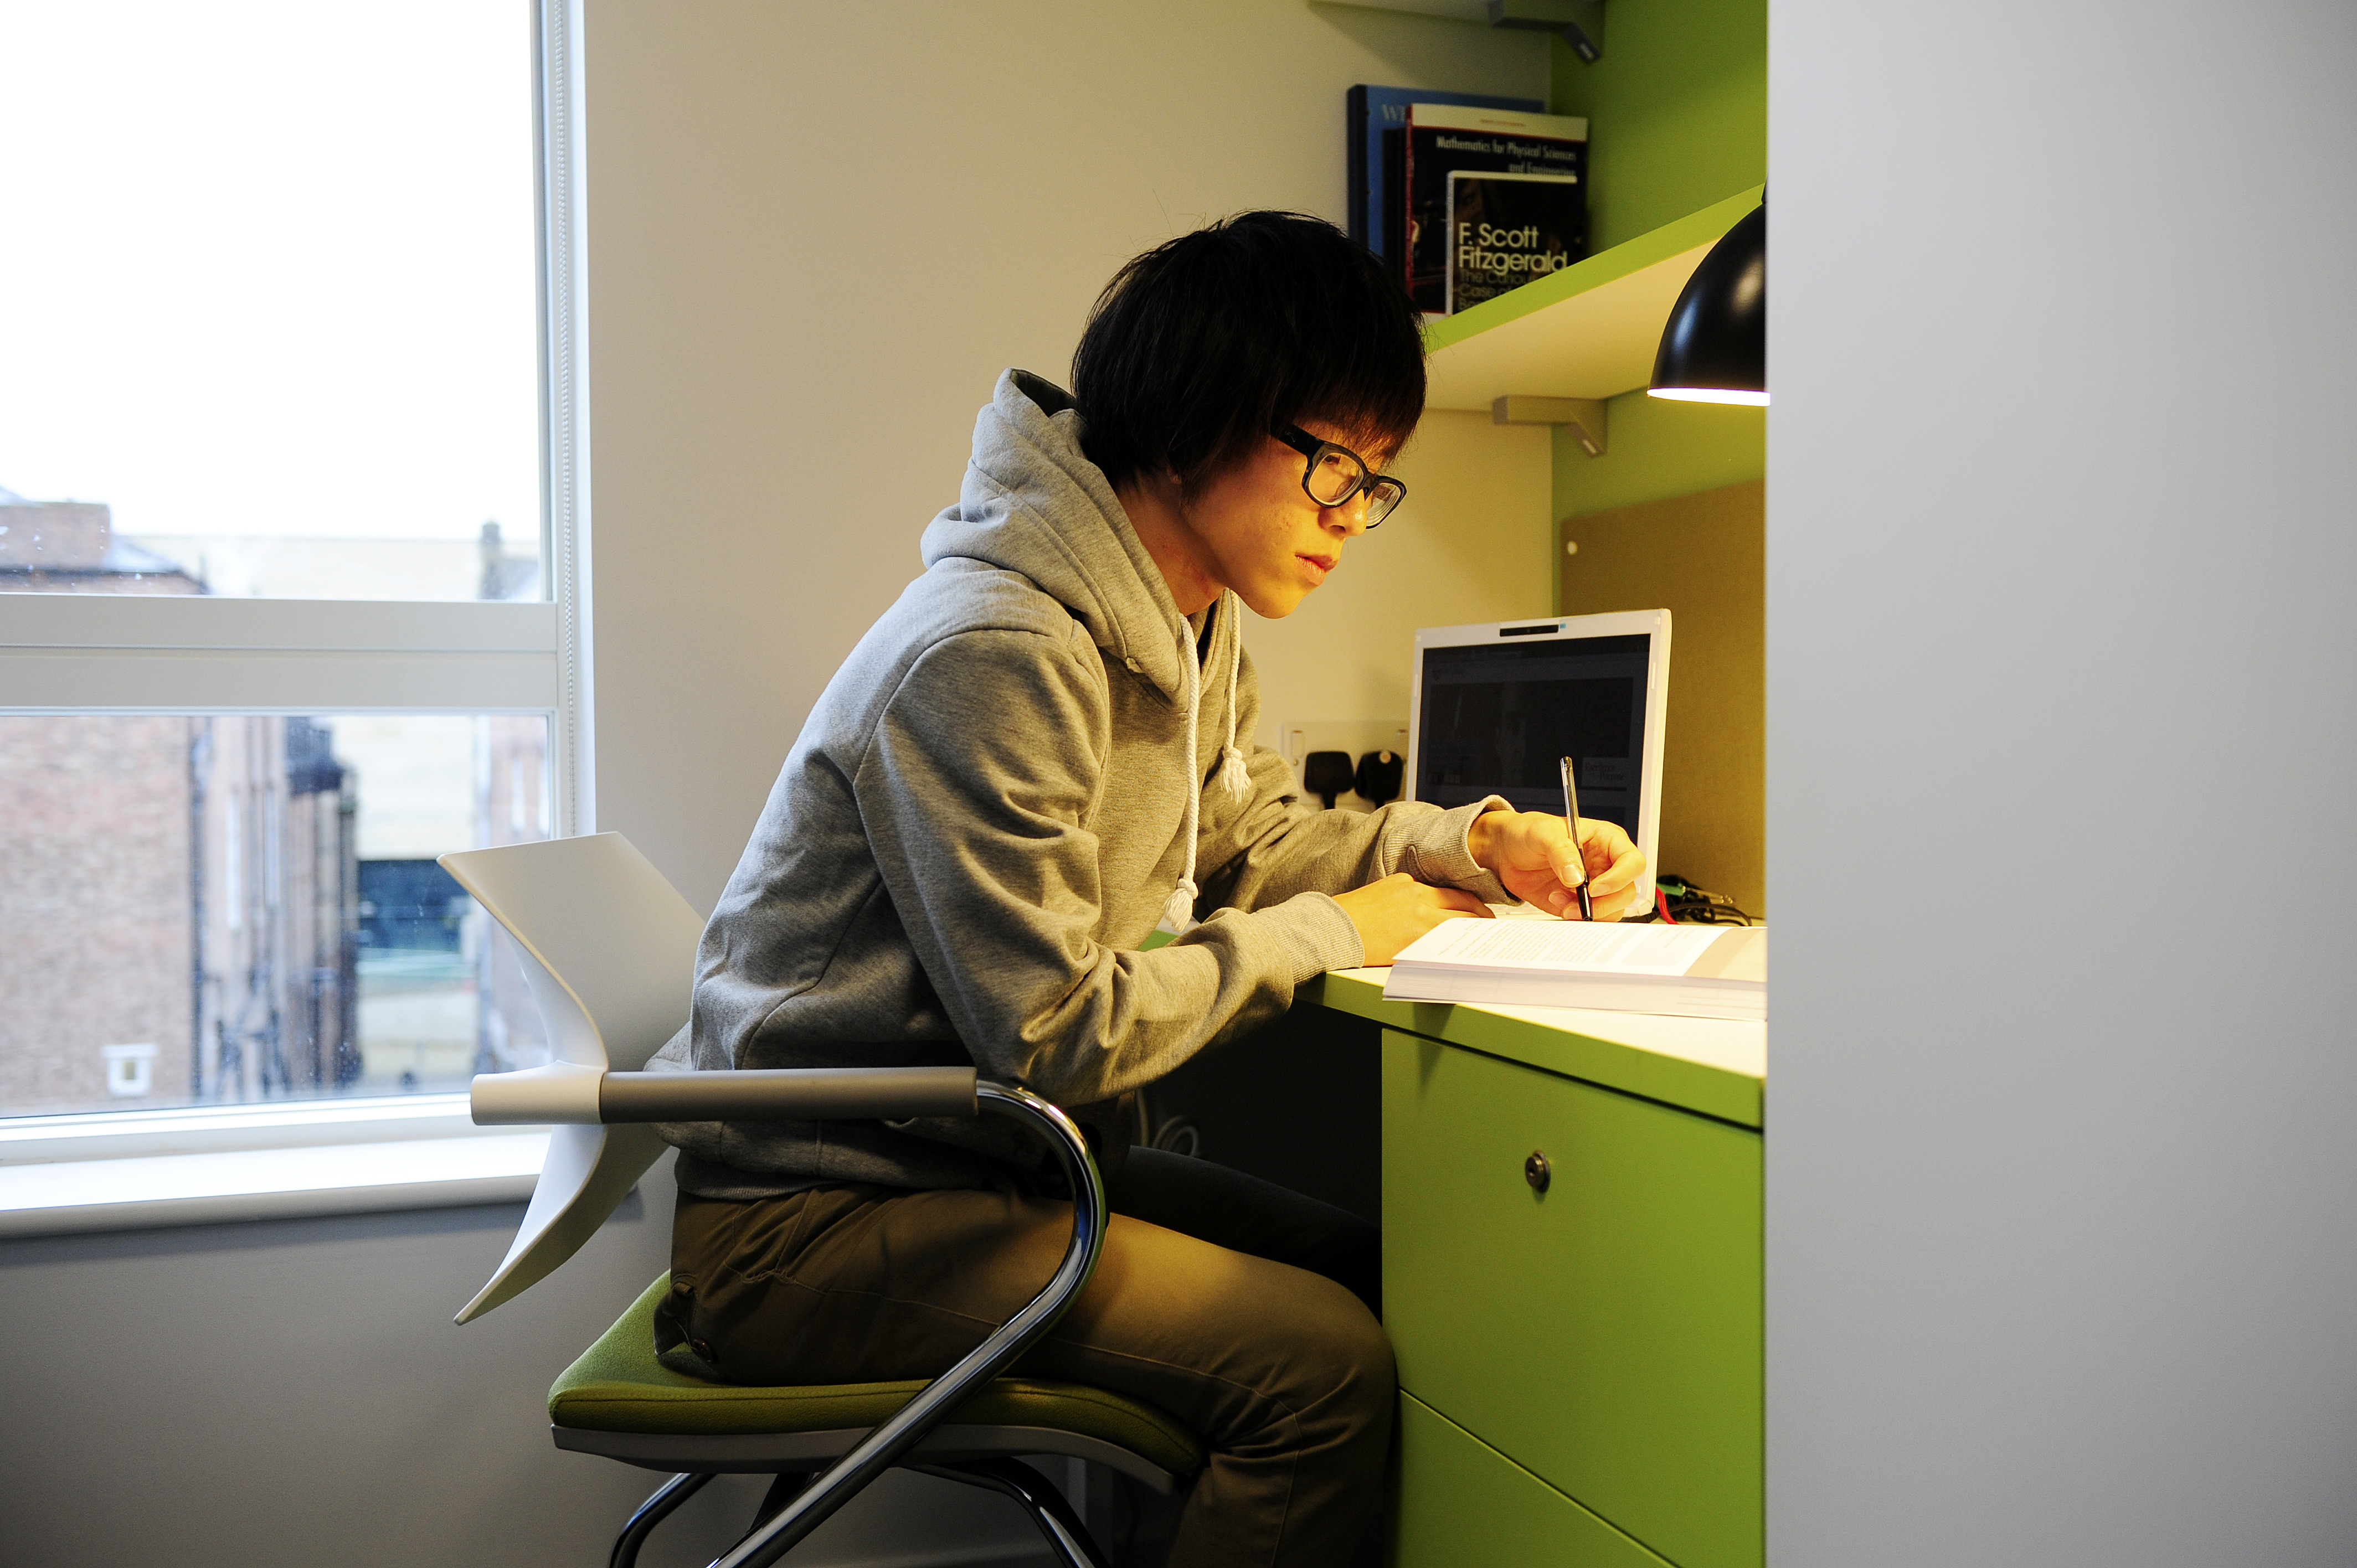 Student studying in the INTO student residences building